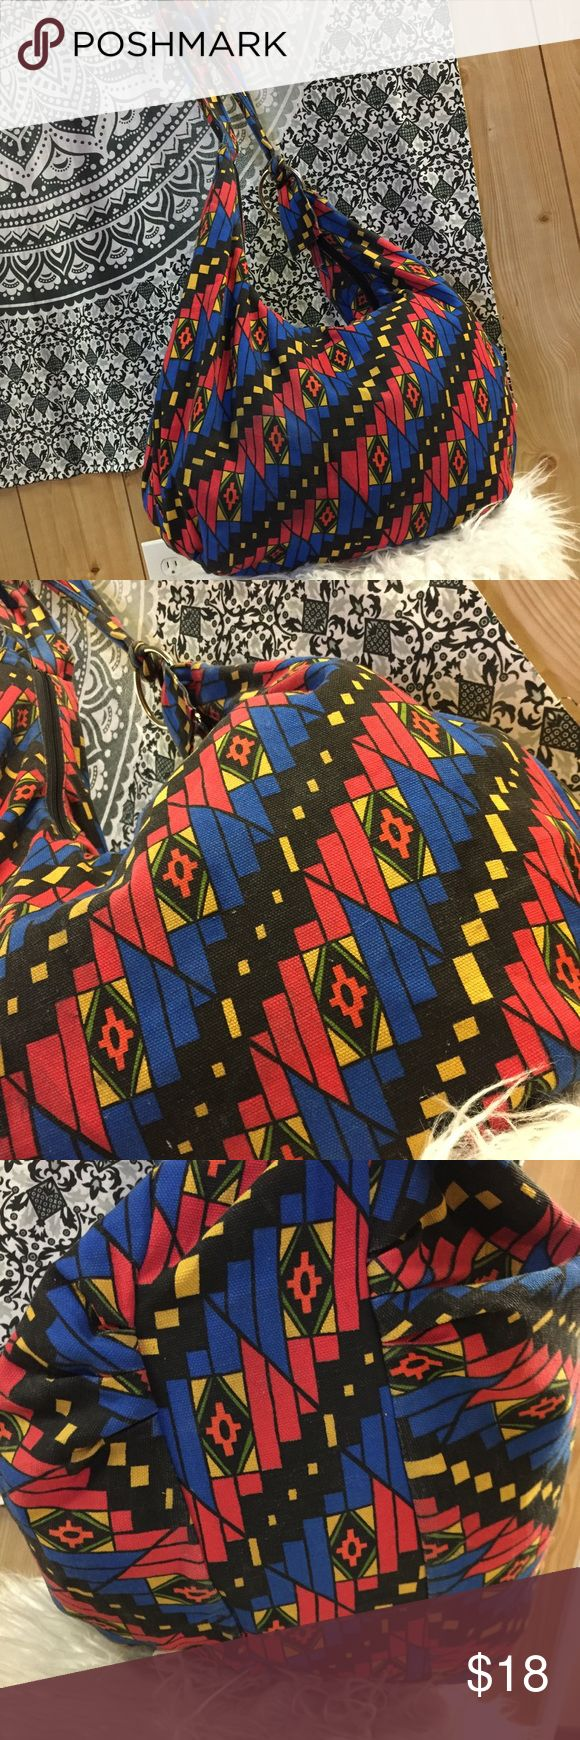 Tribal Aztec print over night duffle festival bag This colorful bag is super roomy and the perfect festival bag. You can fit a LOT in this bag! I used it as a flight carry on! ✈️ Forever 21 Bags Crossbody Bags